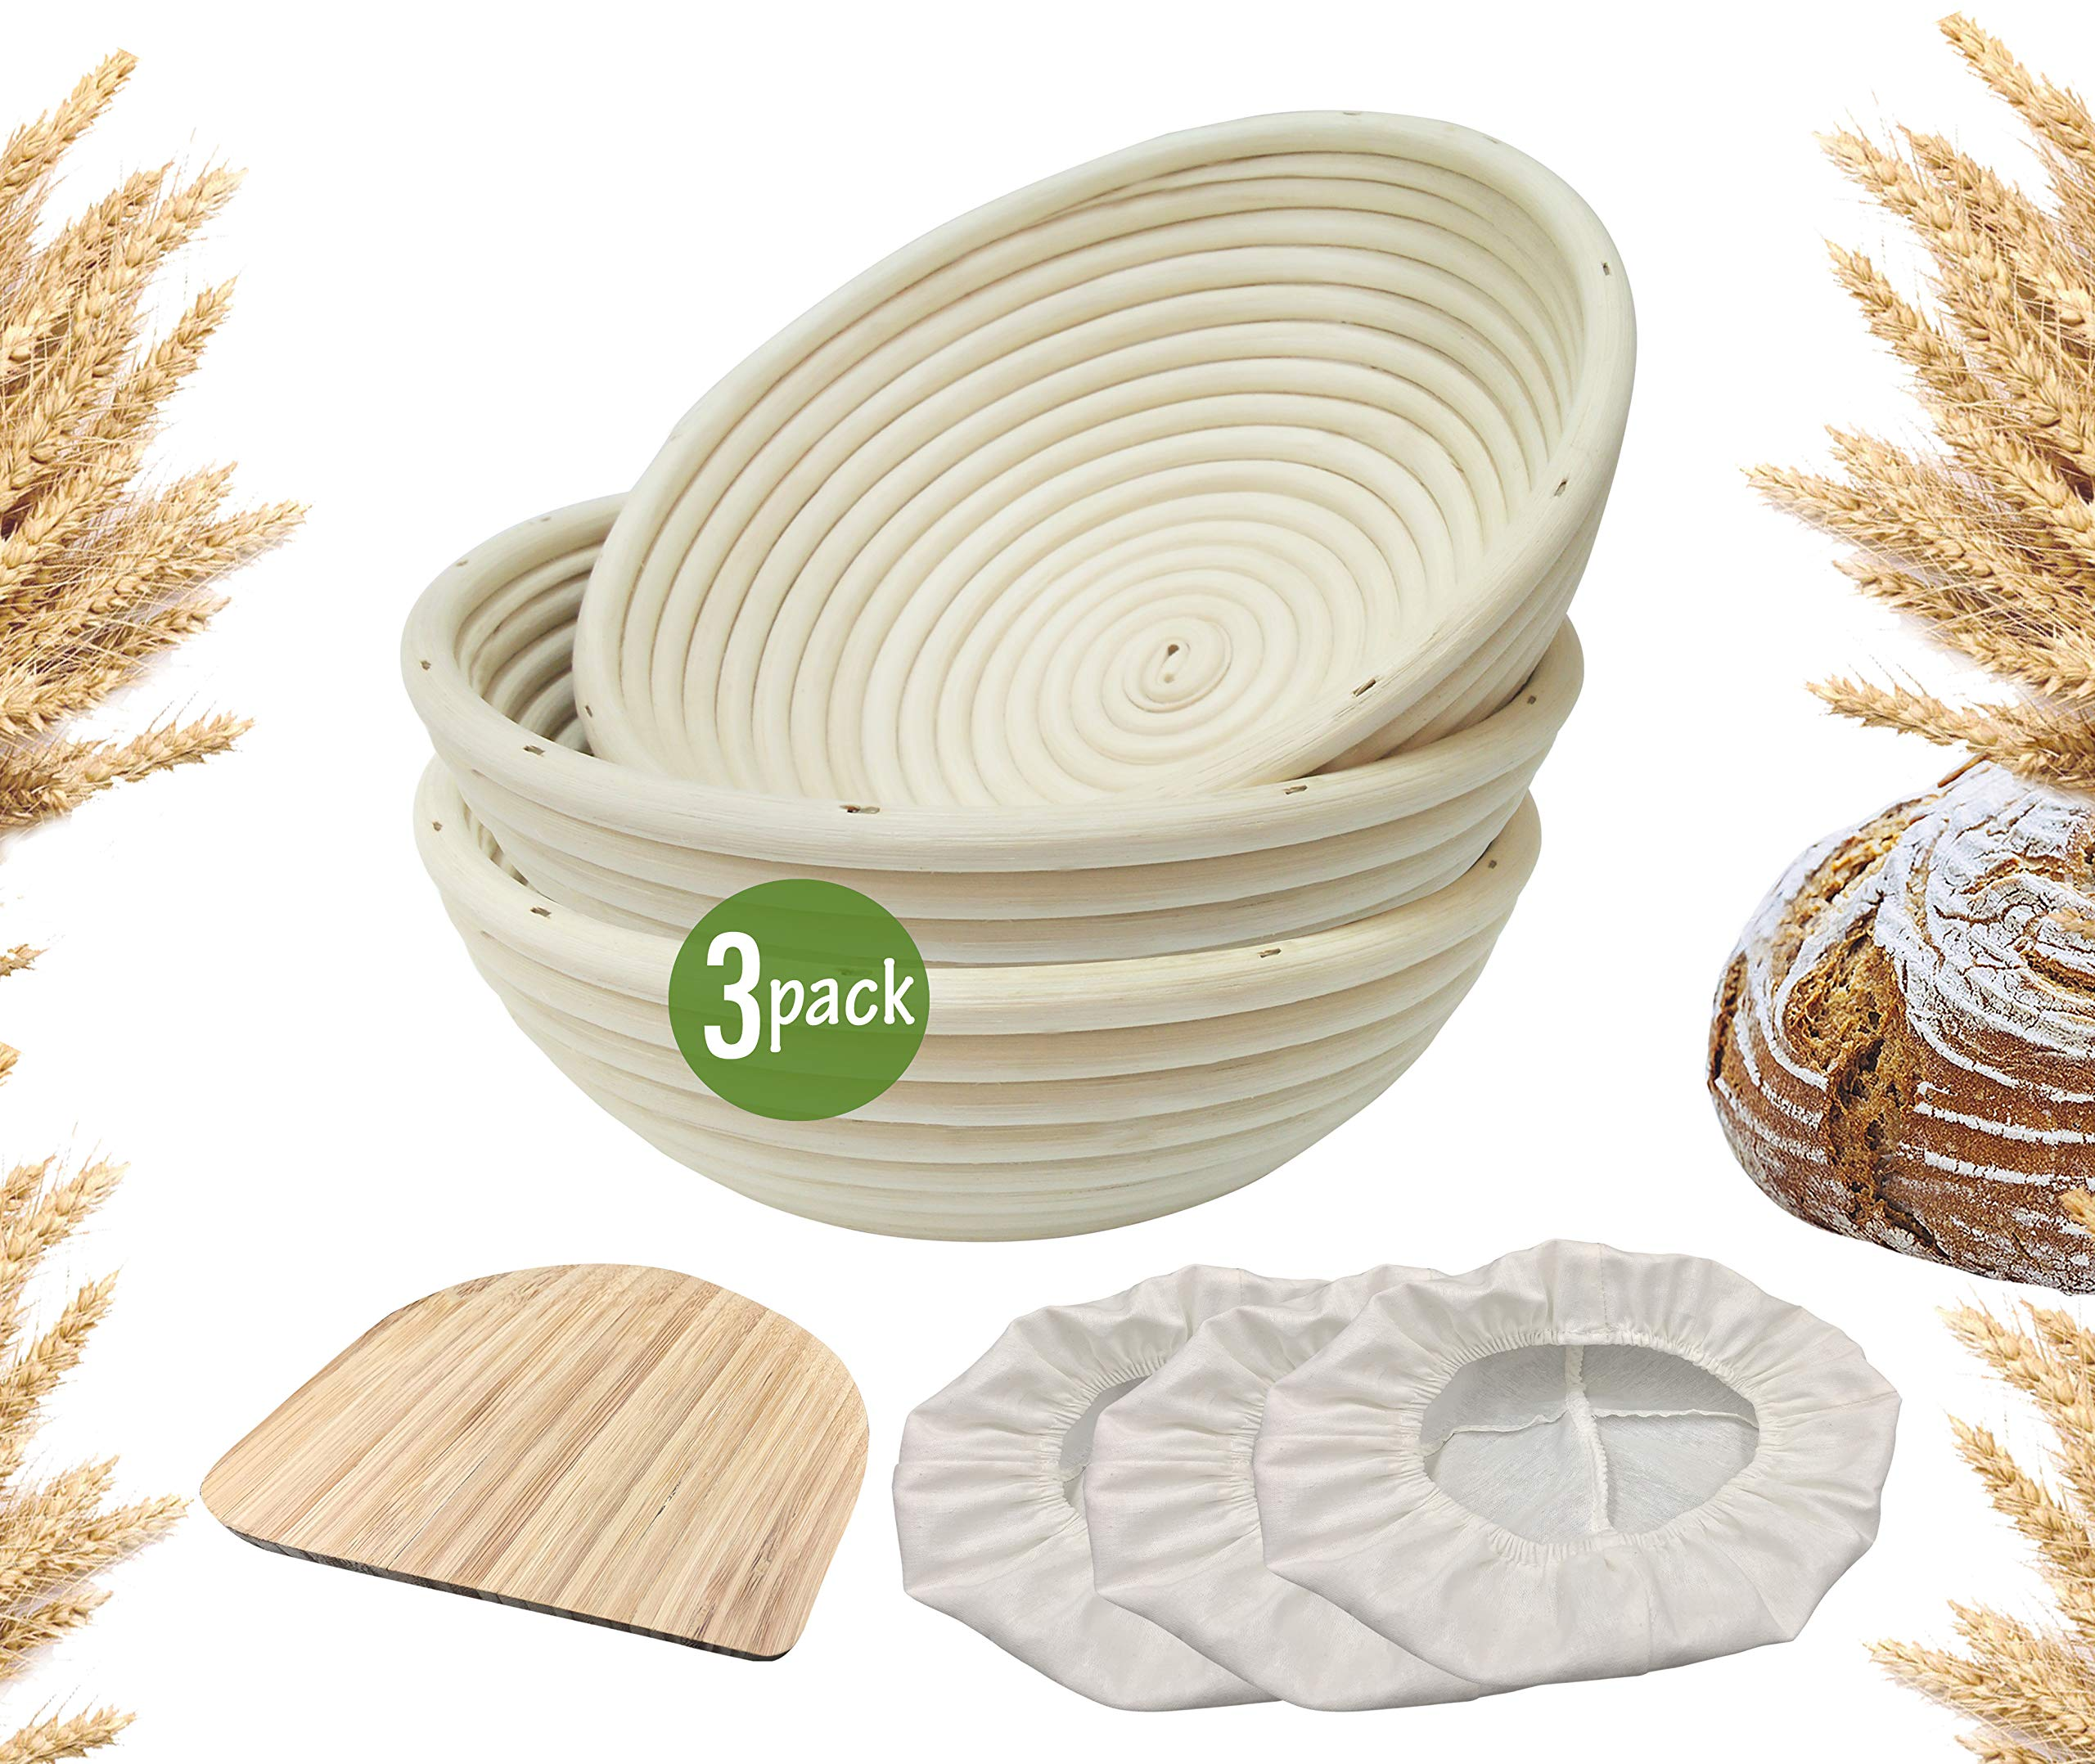 9 inch Banneton Proofing Baskets for Sourdough Bread | Wicker Round Brotform Set with Bamboo Dough Scraper & Cloth Liners | Food-Safe Cane Bread Proofer for Rising (3 Pack 9'' Round Bannetons)